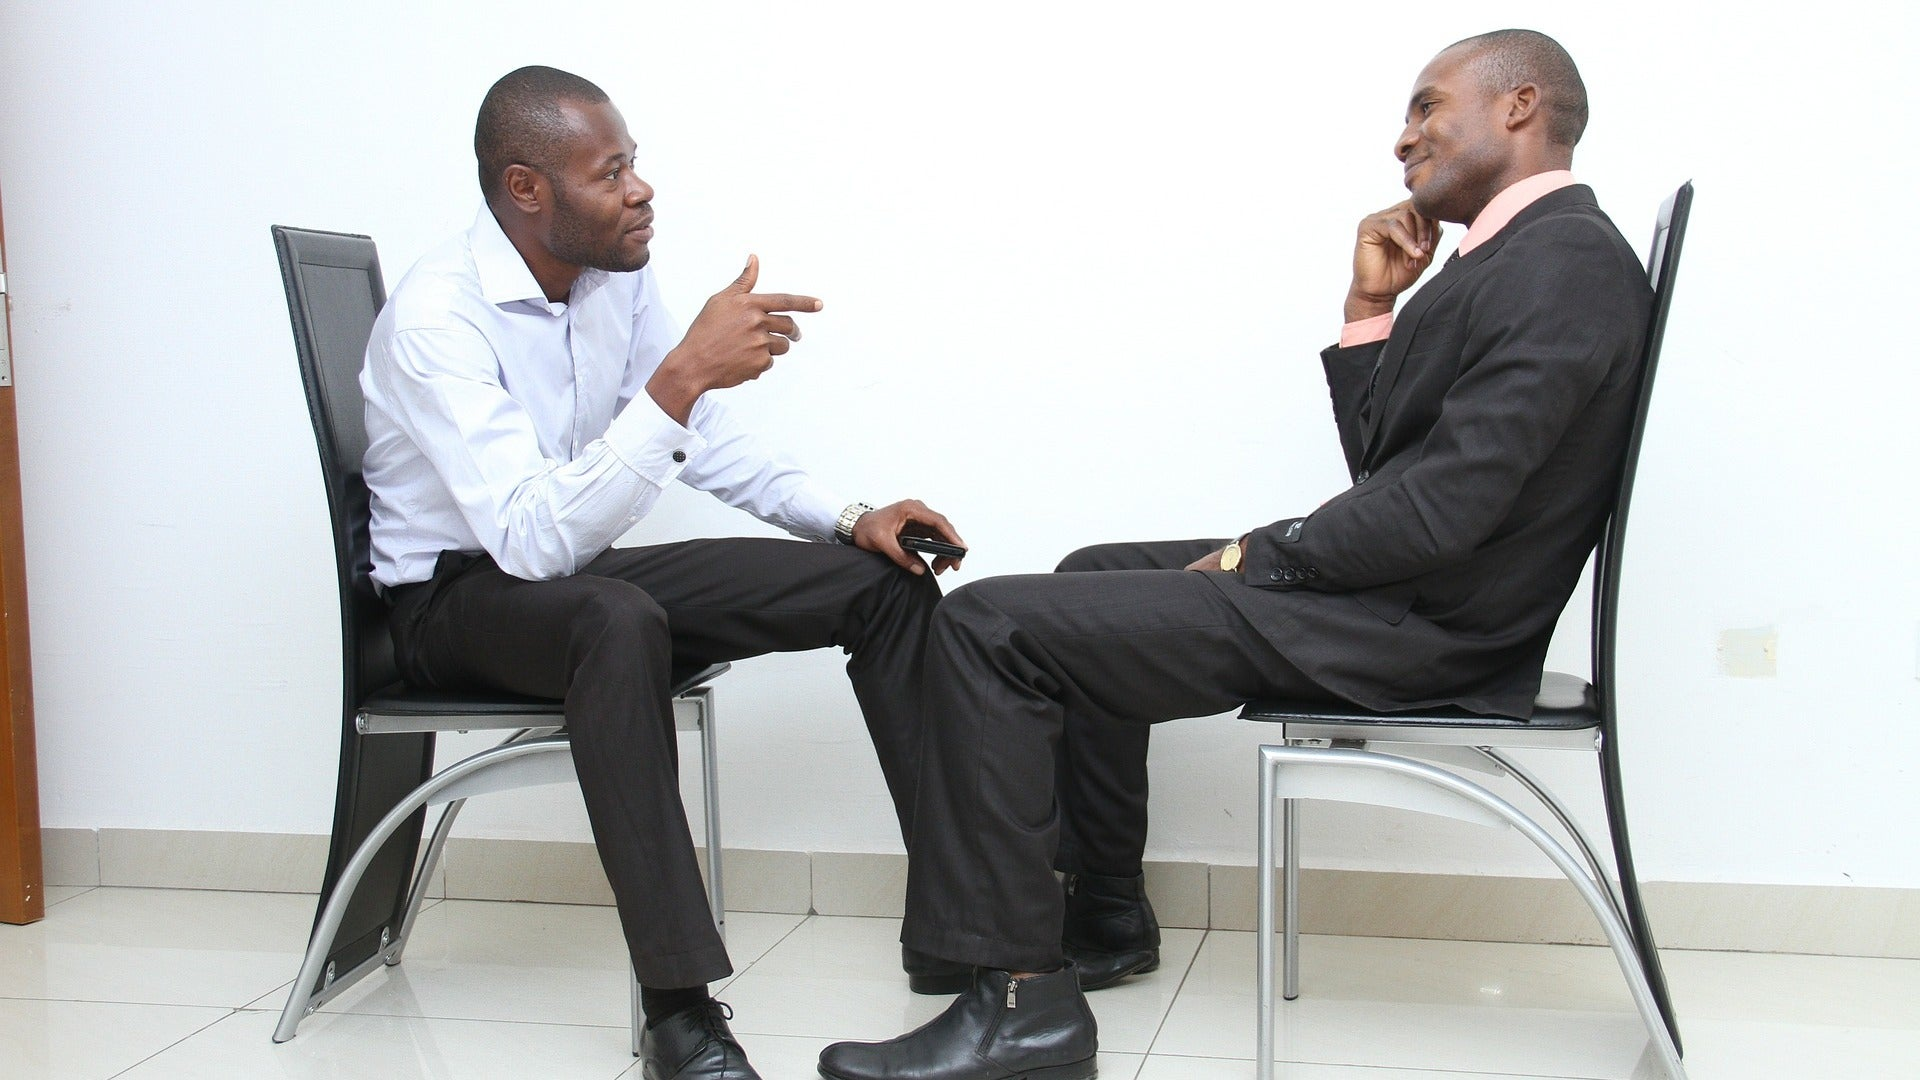 How To Project Confidence In A Job Interview